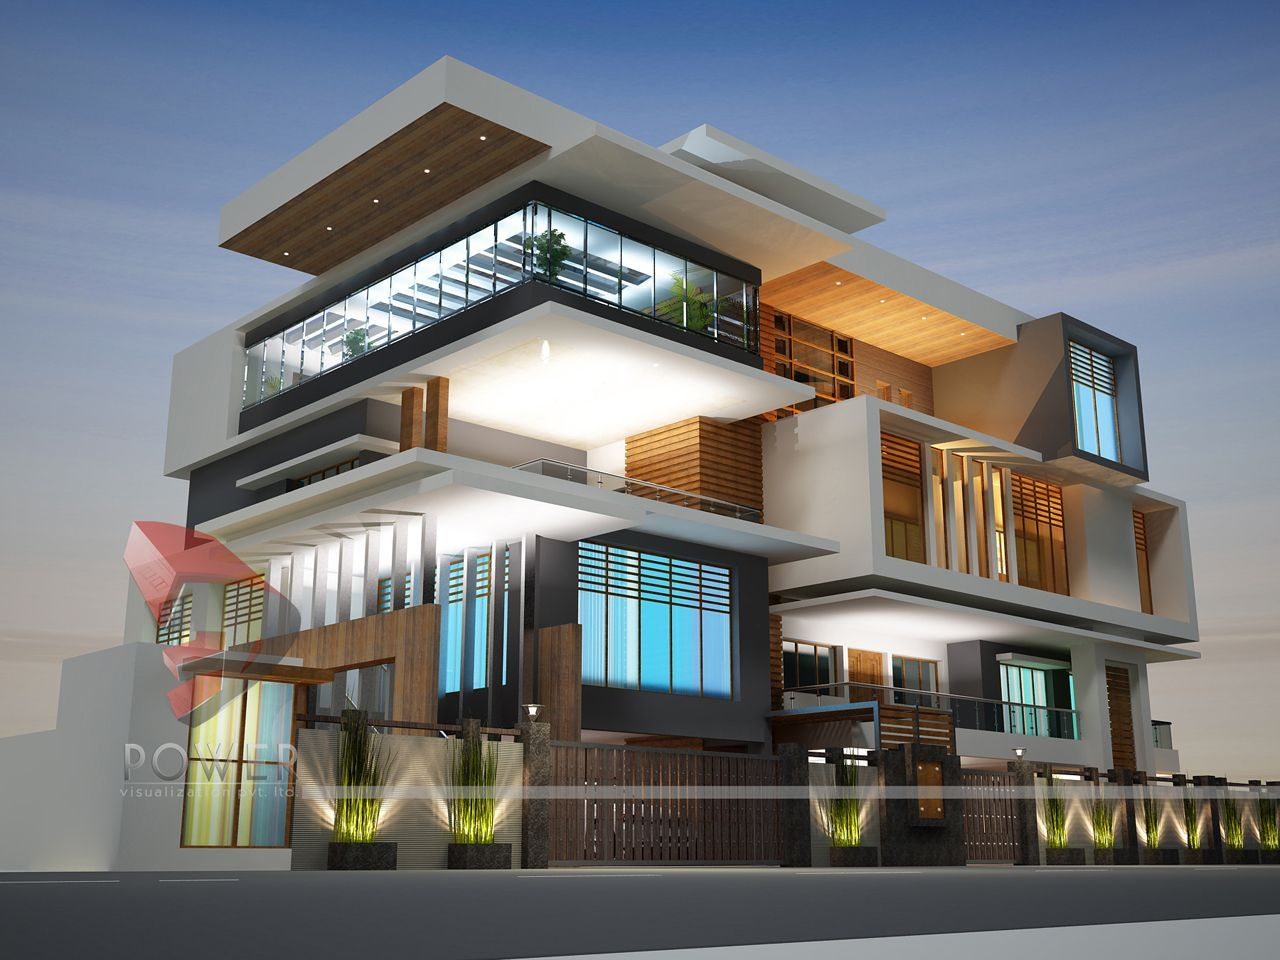 Modern house design in india architecture india modern for Contemporary home designs india